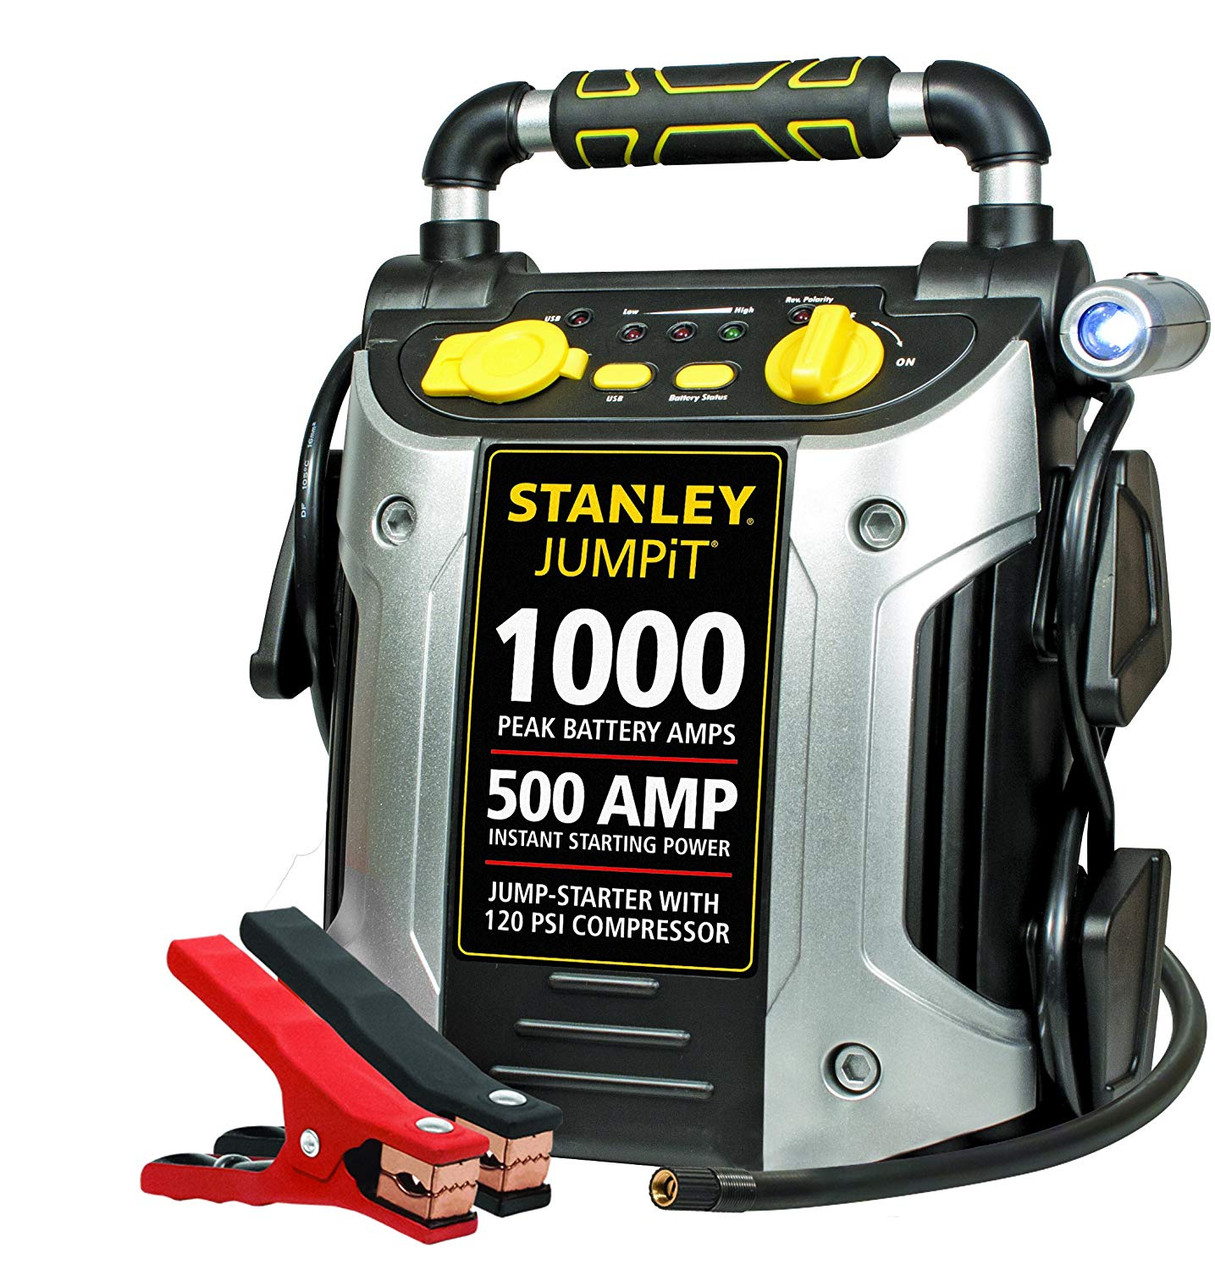 Stanley Power Station Jump Starter battery for astrophotography mounts, telescopes, cameras and other accessories for beginner astrophotographers